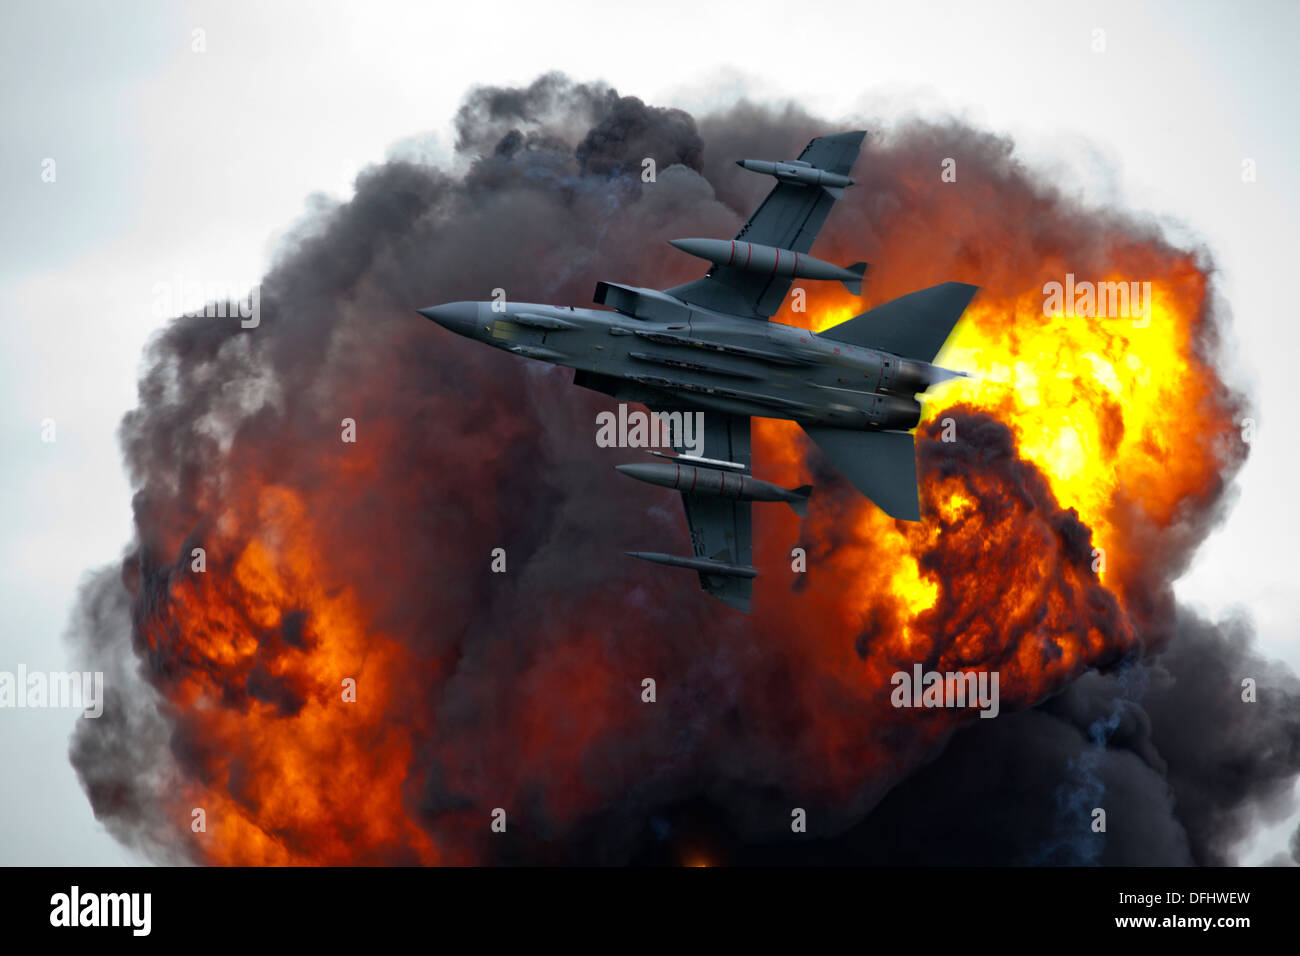 Jet fighter bomber in flight with explosion blast - Stock Image